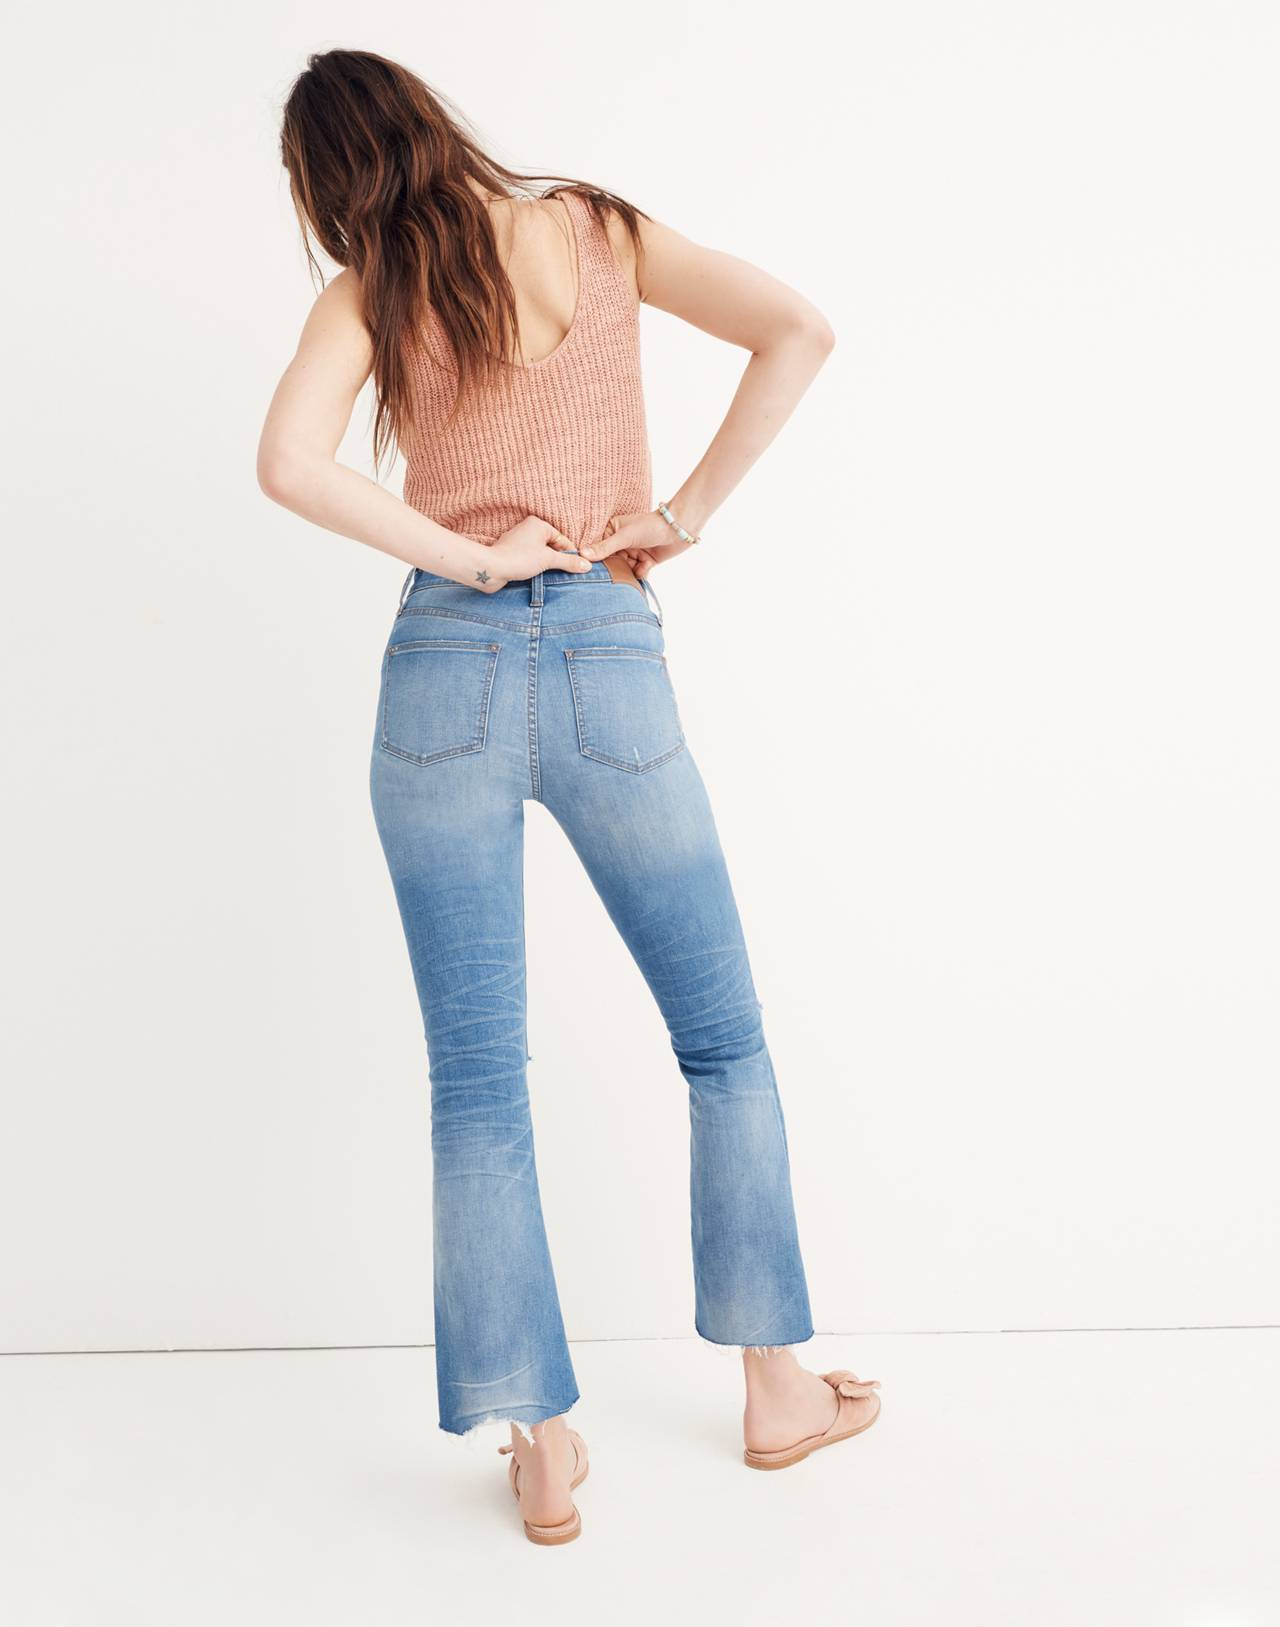 Petite Cali Demi-Boot Jeans in Bronson Wash: Button-Front Edition in bronson wash image 3